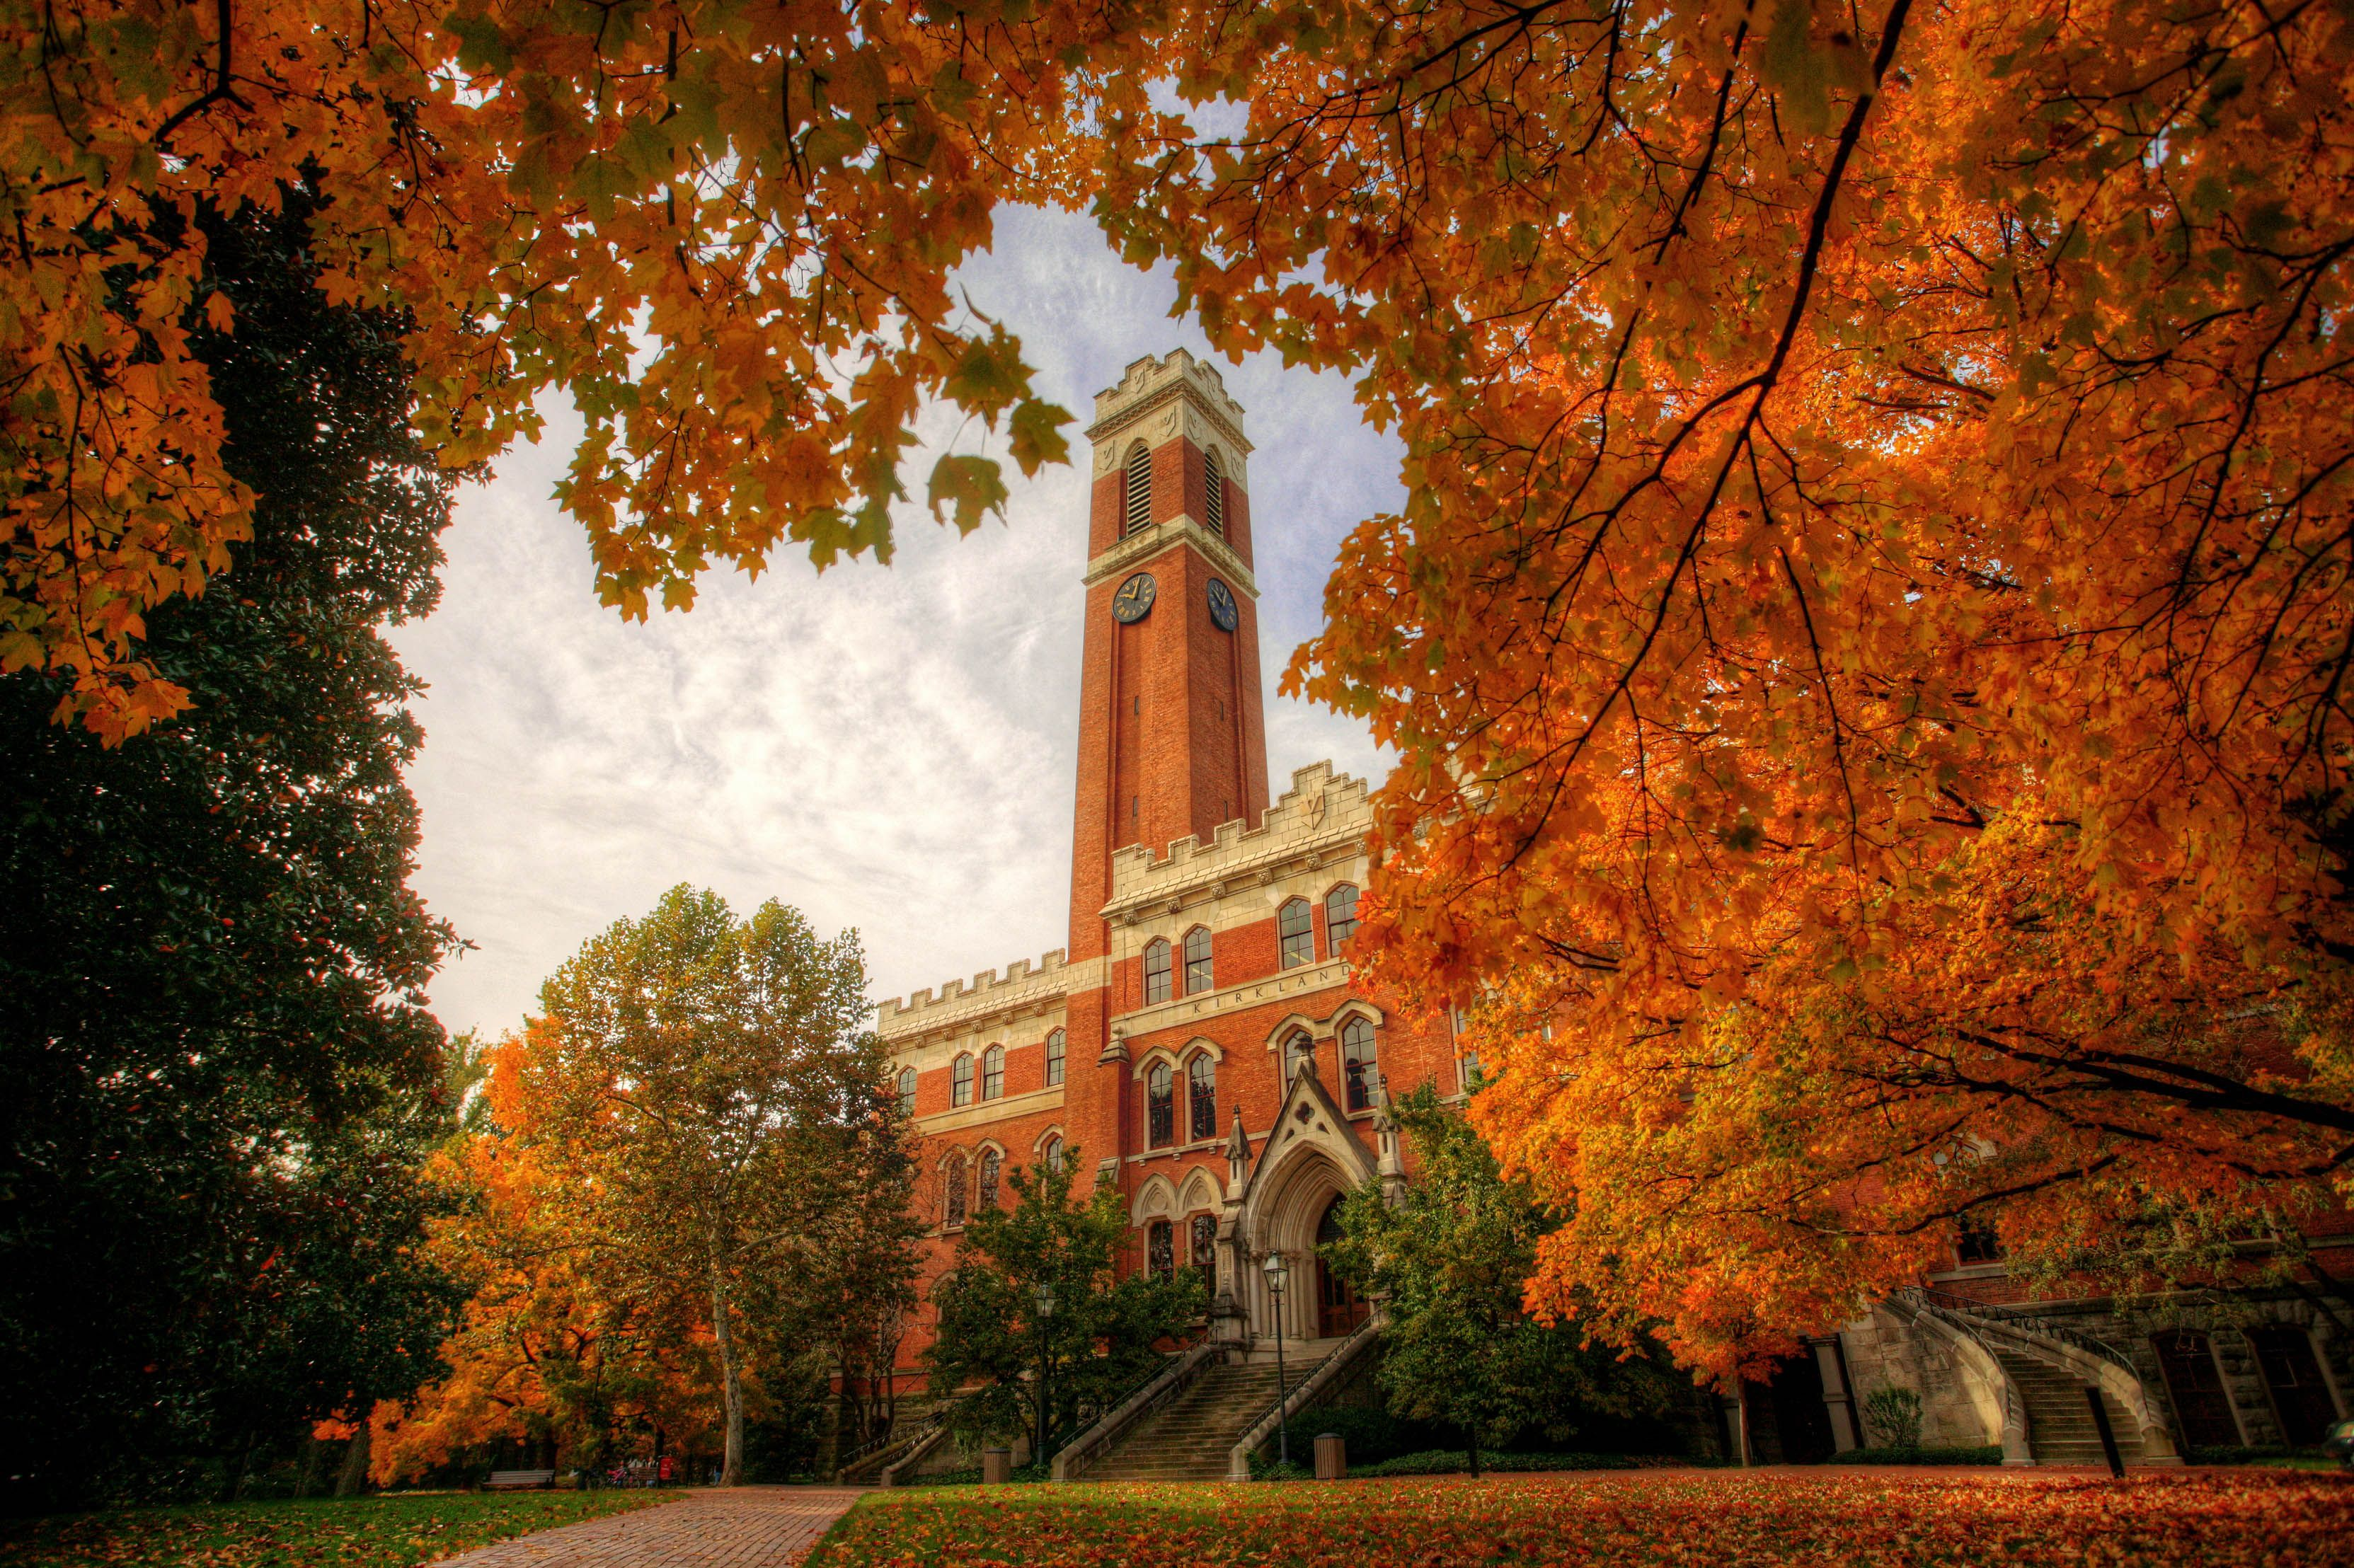 Absence of Economic Diversity at Vanderbilt